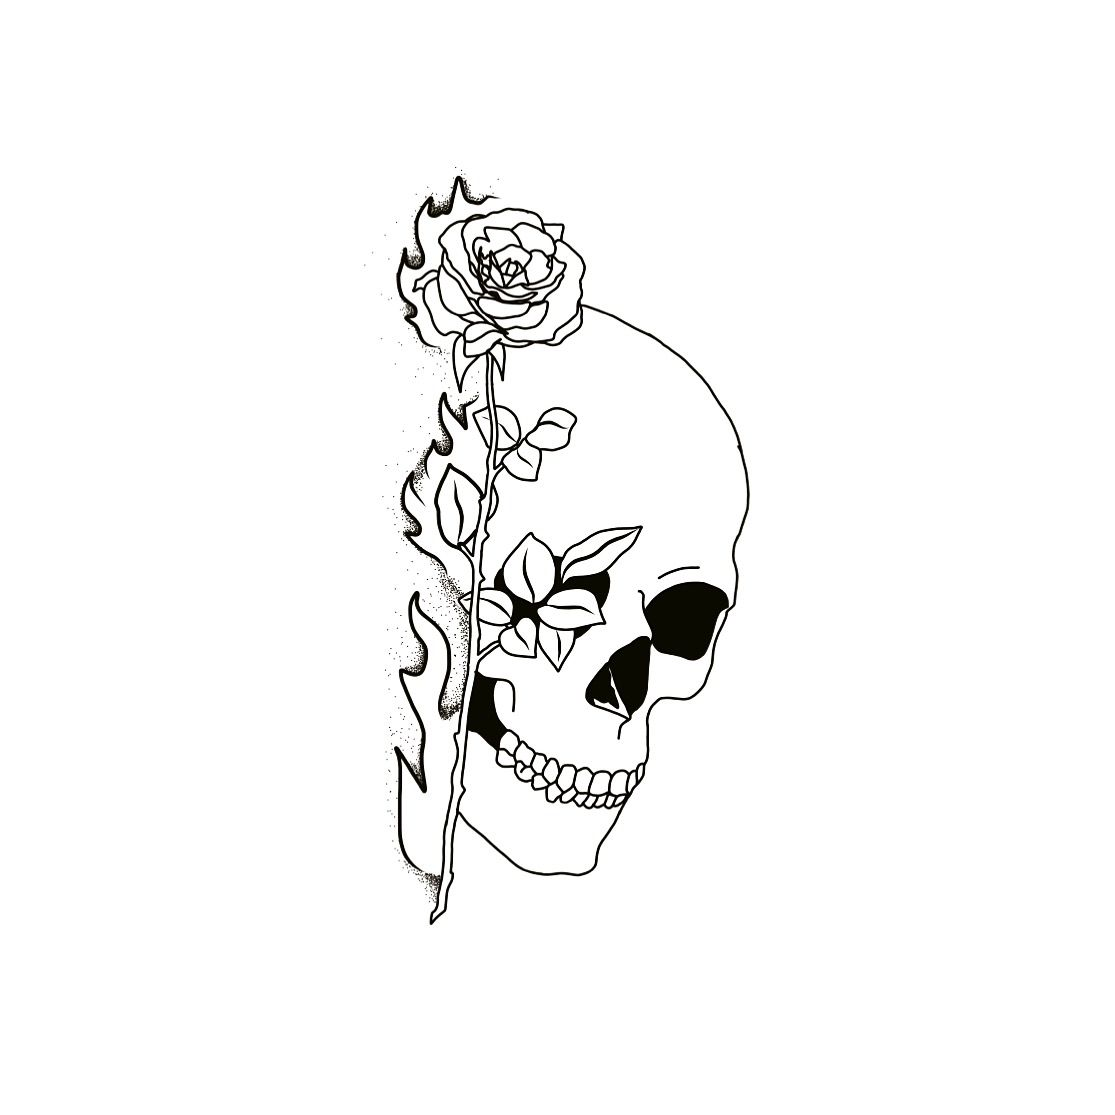 Amazing Tattoo Flash Design By Bobs Tattoos Skull And Rose Tattoo Stencil Outline Tattoo Outline Drawing Flash Tattoo Designs